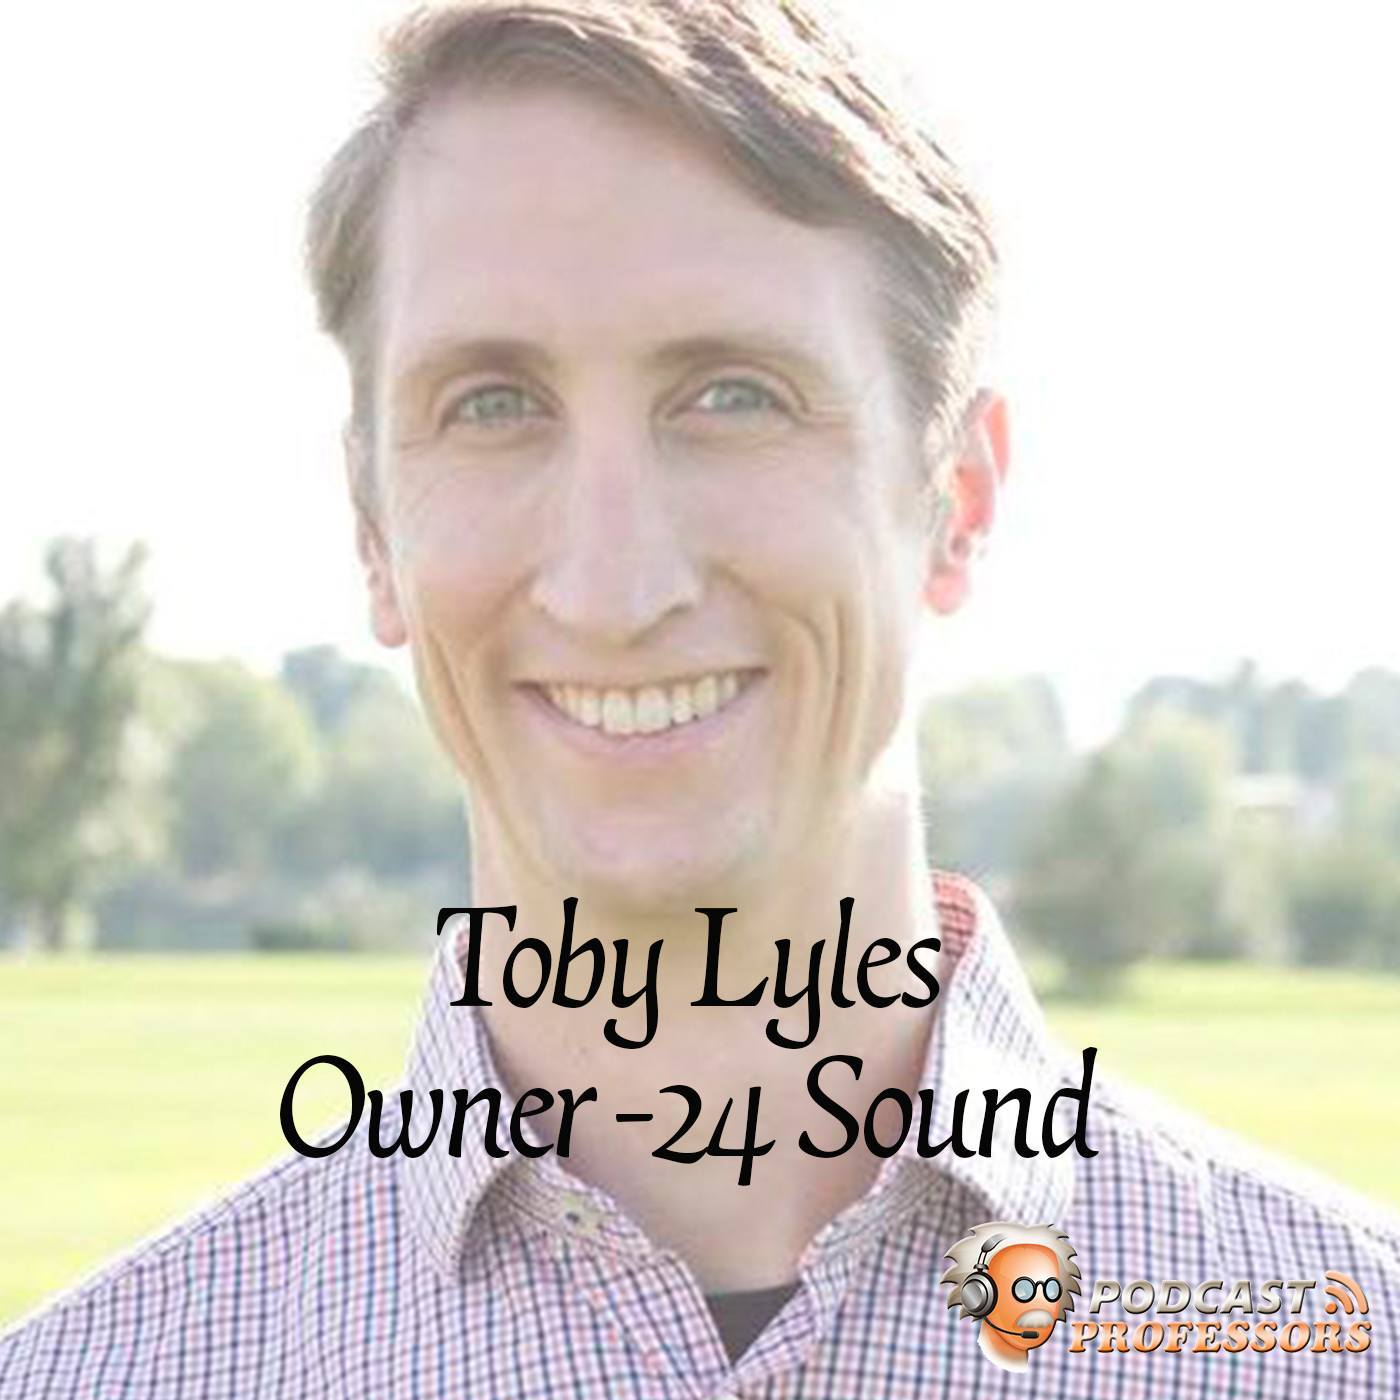 Toby Lyles 24 Sound Podcast Professors